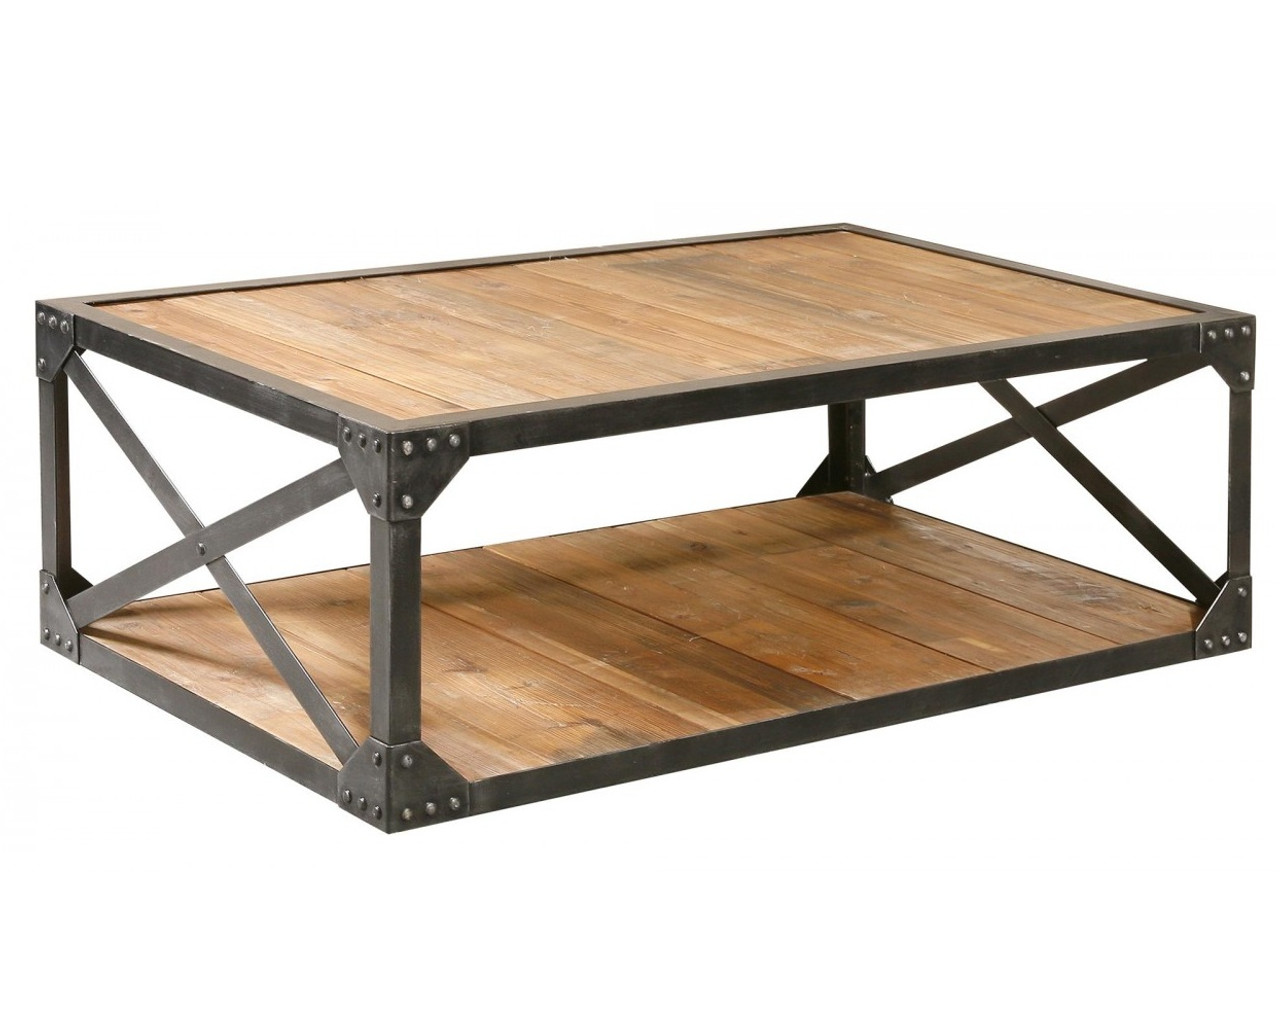 Delicieux Industrial Metal And Wood Coffee Table